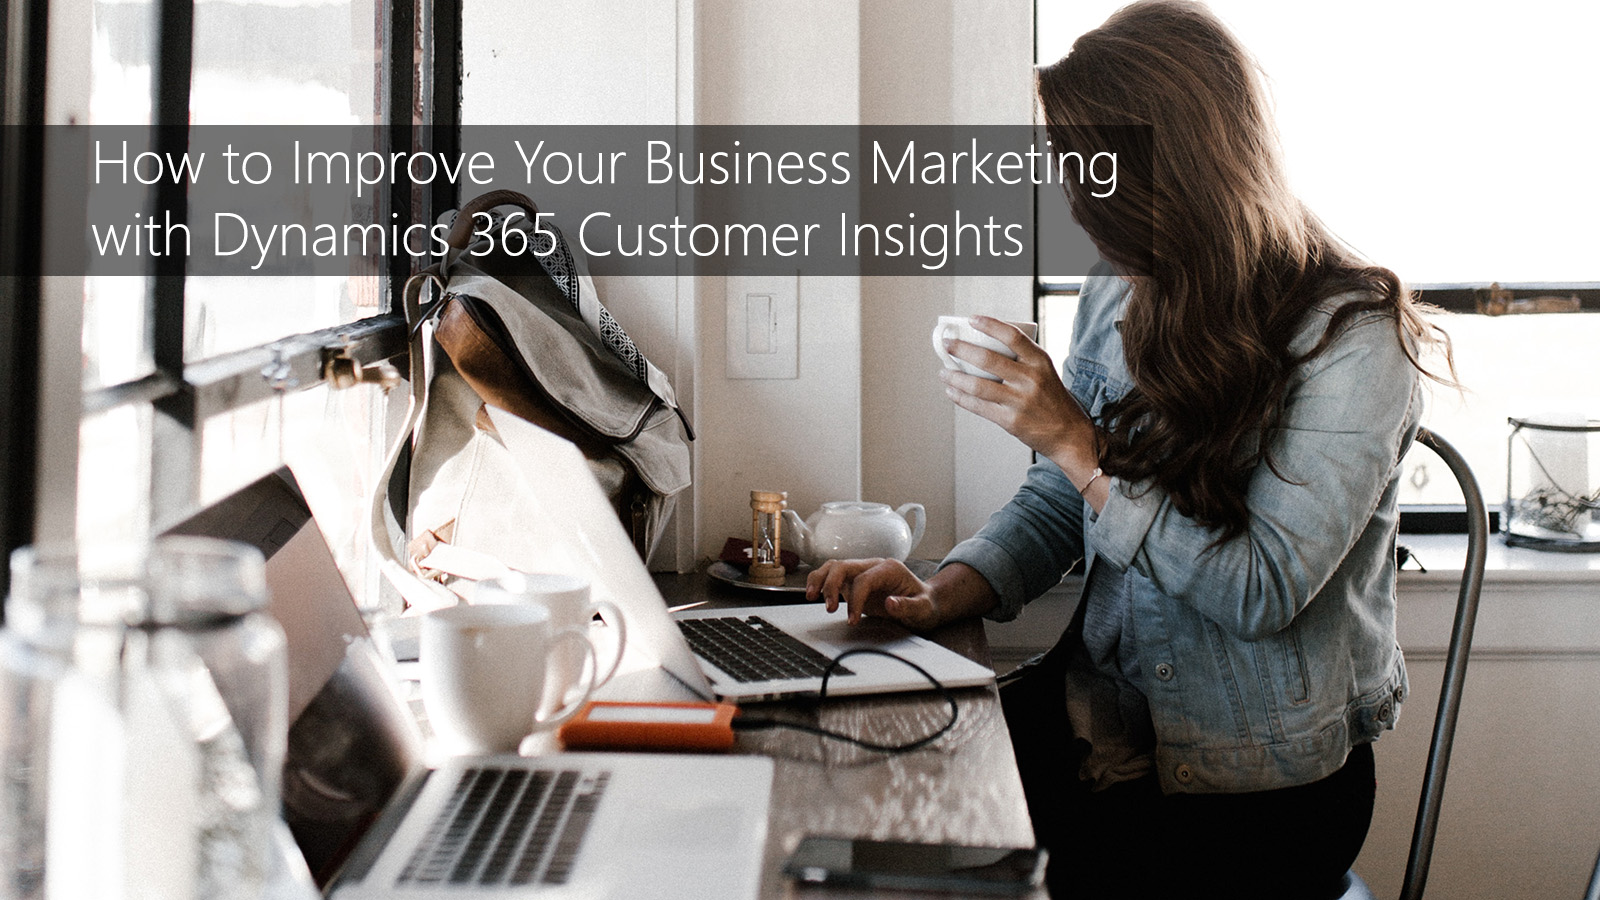 tmc-blog-how-to-improve-your-business-marketing-with-dynamics-365-customer-insights - Copy